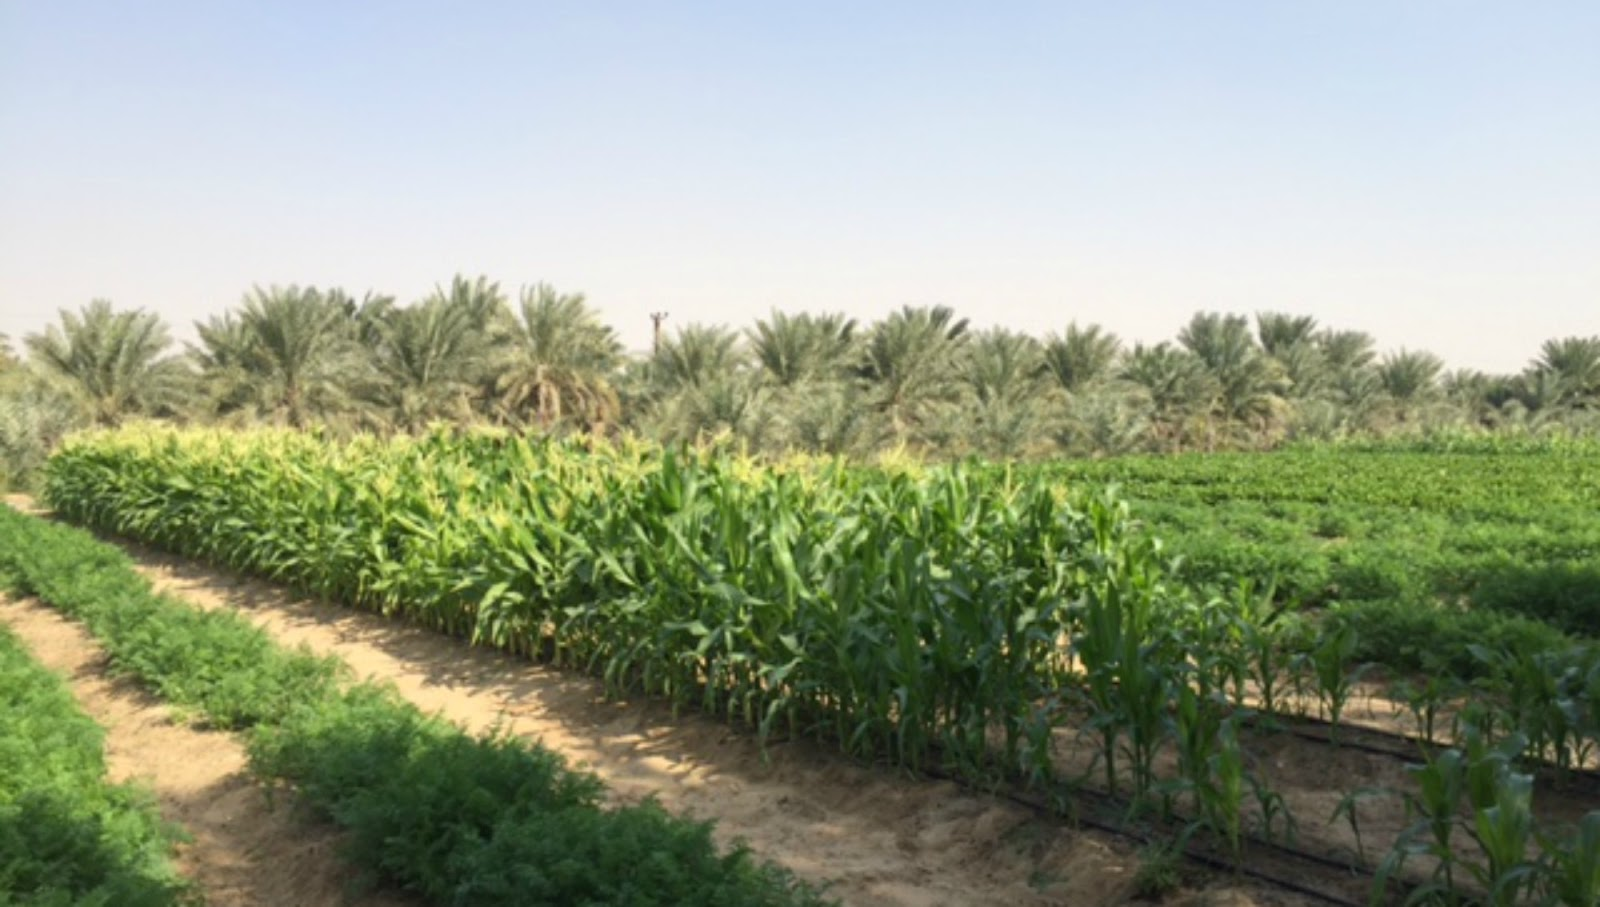 agriculture in the uae 251 economic development in the uae agricultural resources the total area of land under agriculture and forestry constitutes less than 15 per cent of the total land area of the uae.